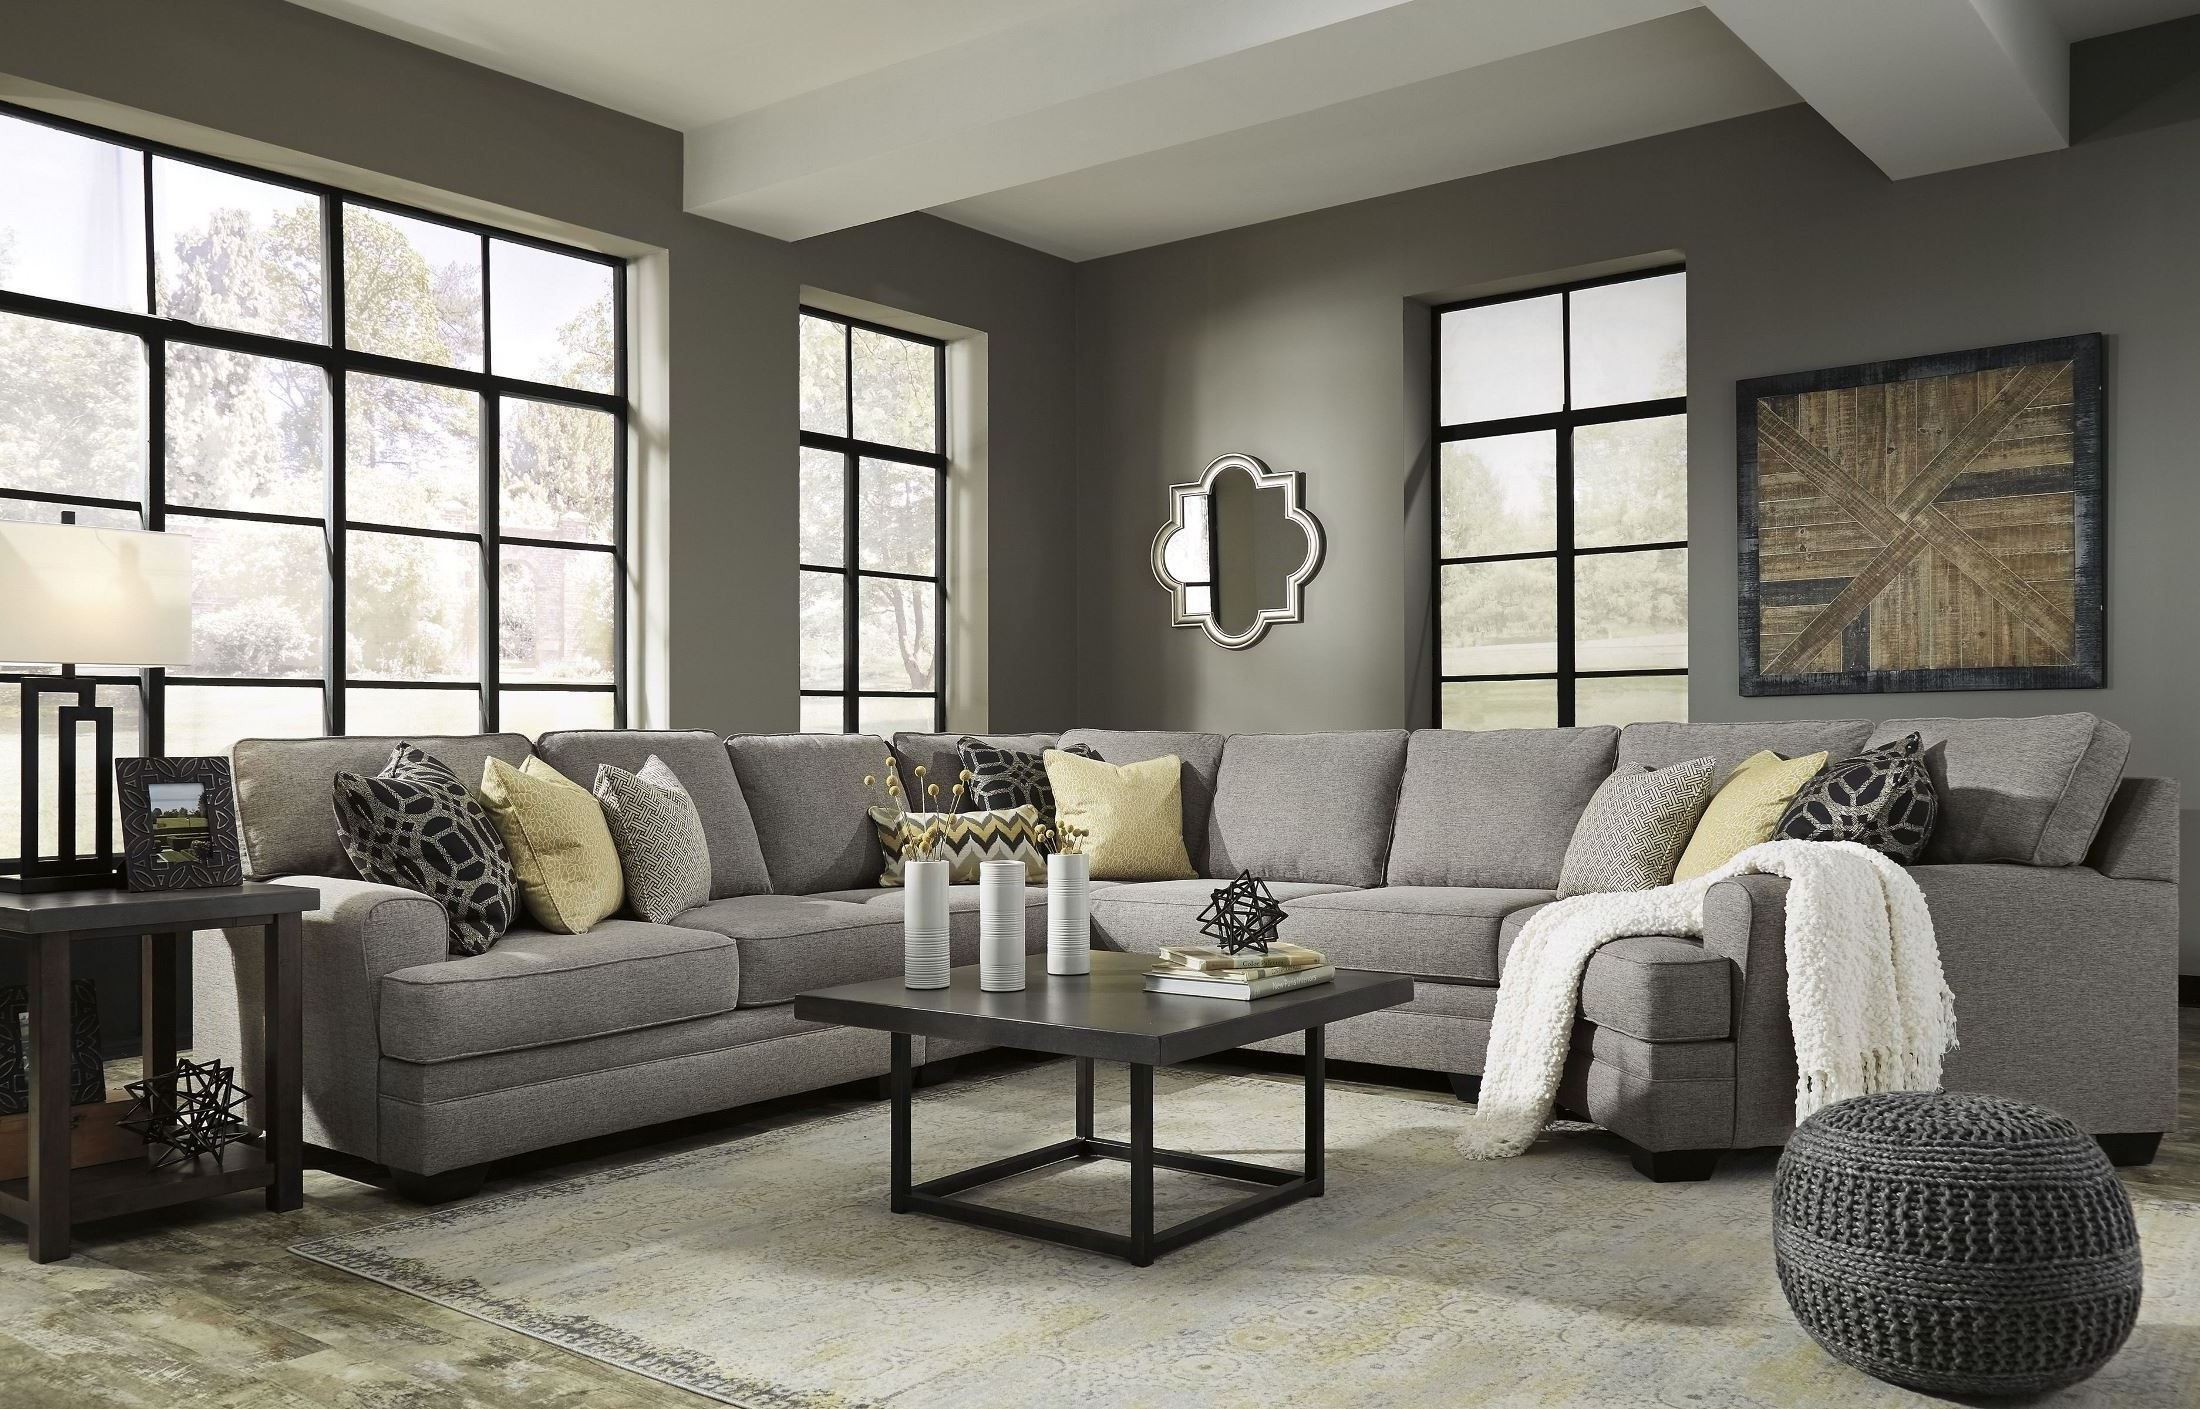 Coleman Furniture In Well Known Aspen 2 Piece Sleeper Sectionals With Laf Chaise (View 6 of 20)